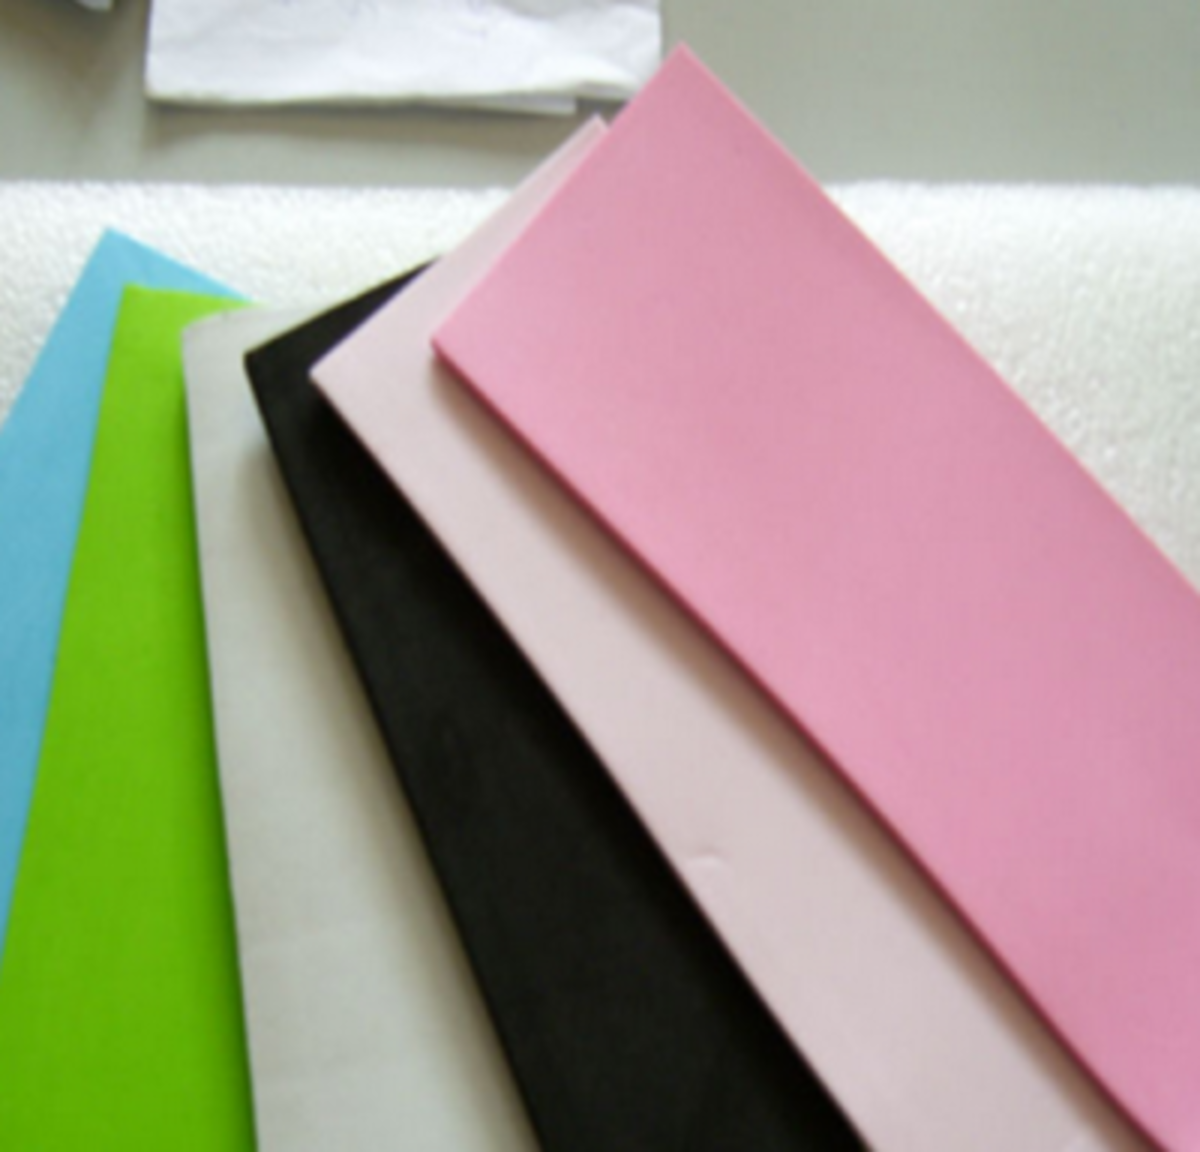 Different colors of foam sheets.